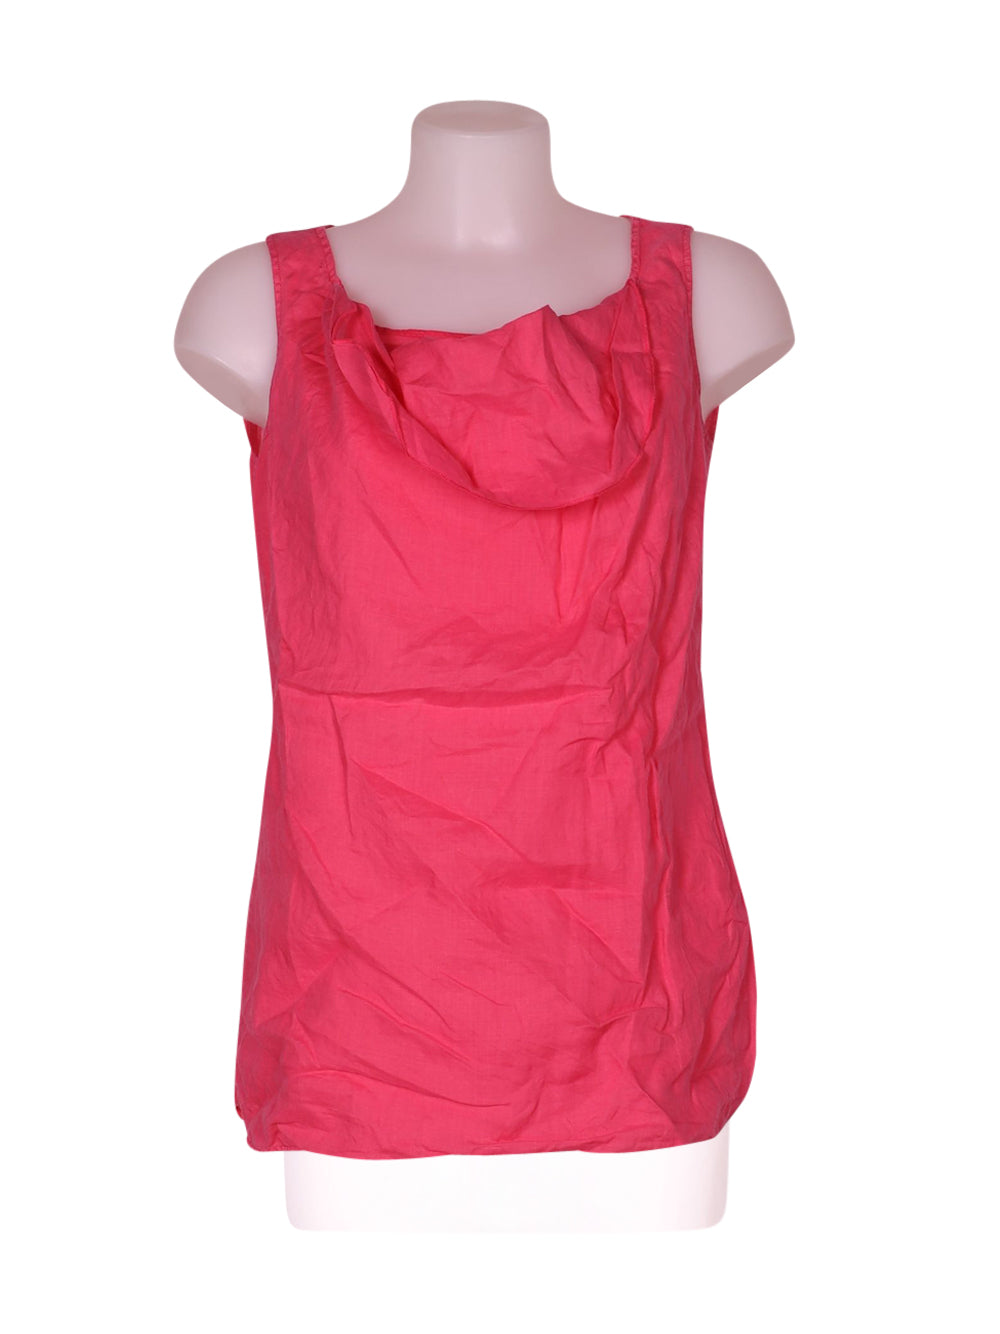 Front photo of Preloved Cerruti 1881 Pink Woman's sleeveless top - size 8/S